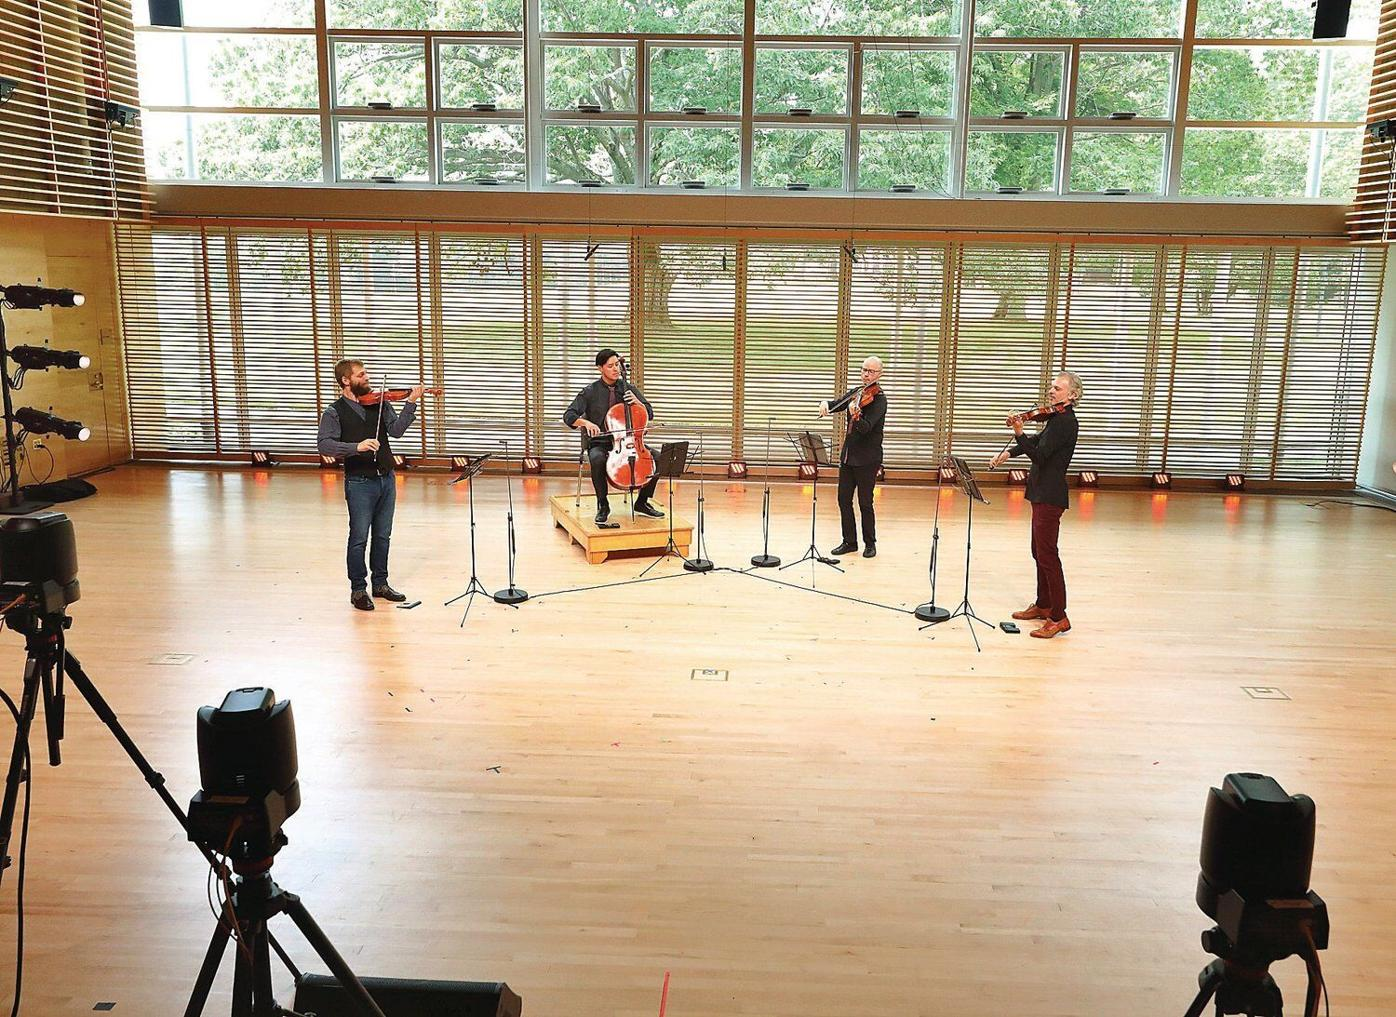 Tanglewood review: Season of mixed blessings with almost-too-perfect concert recordings